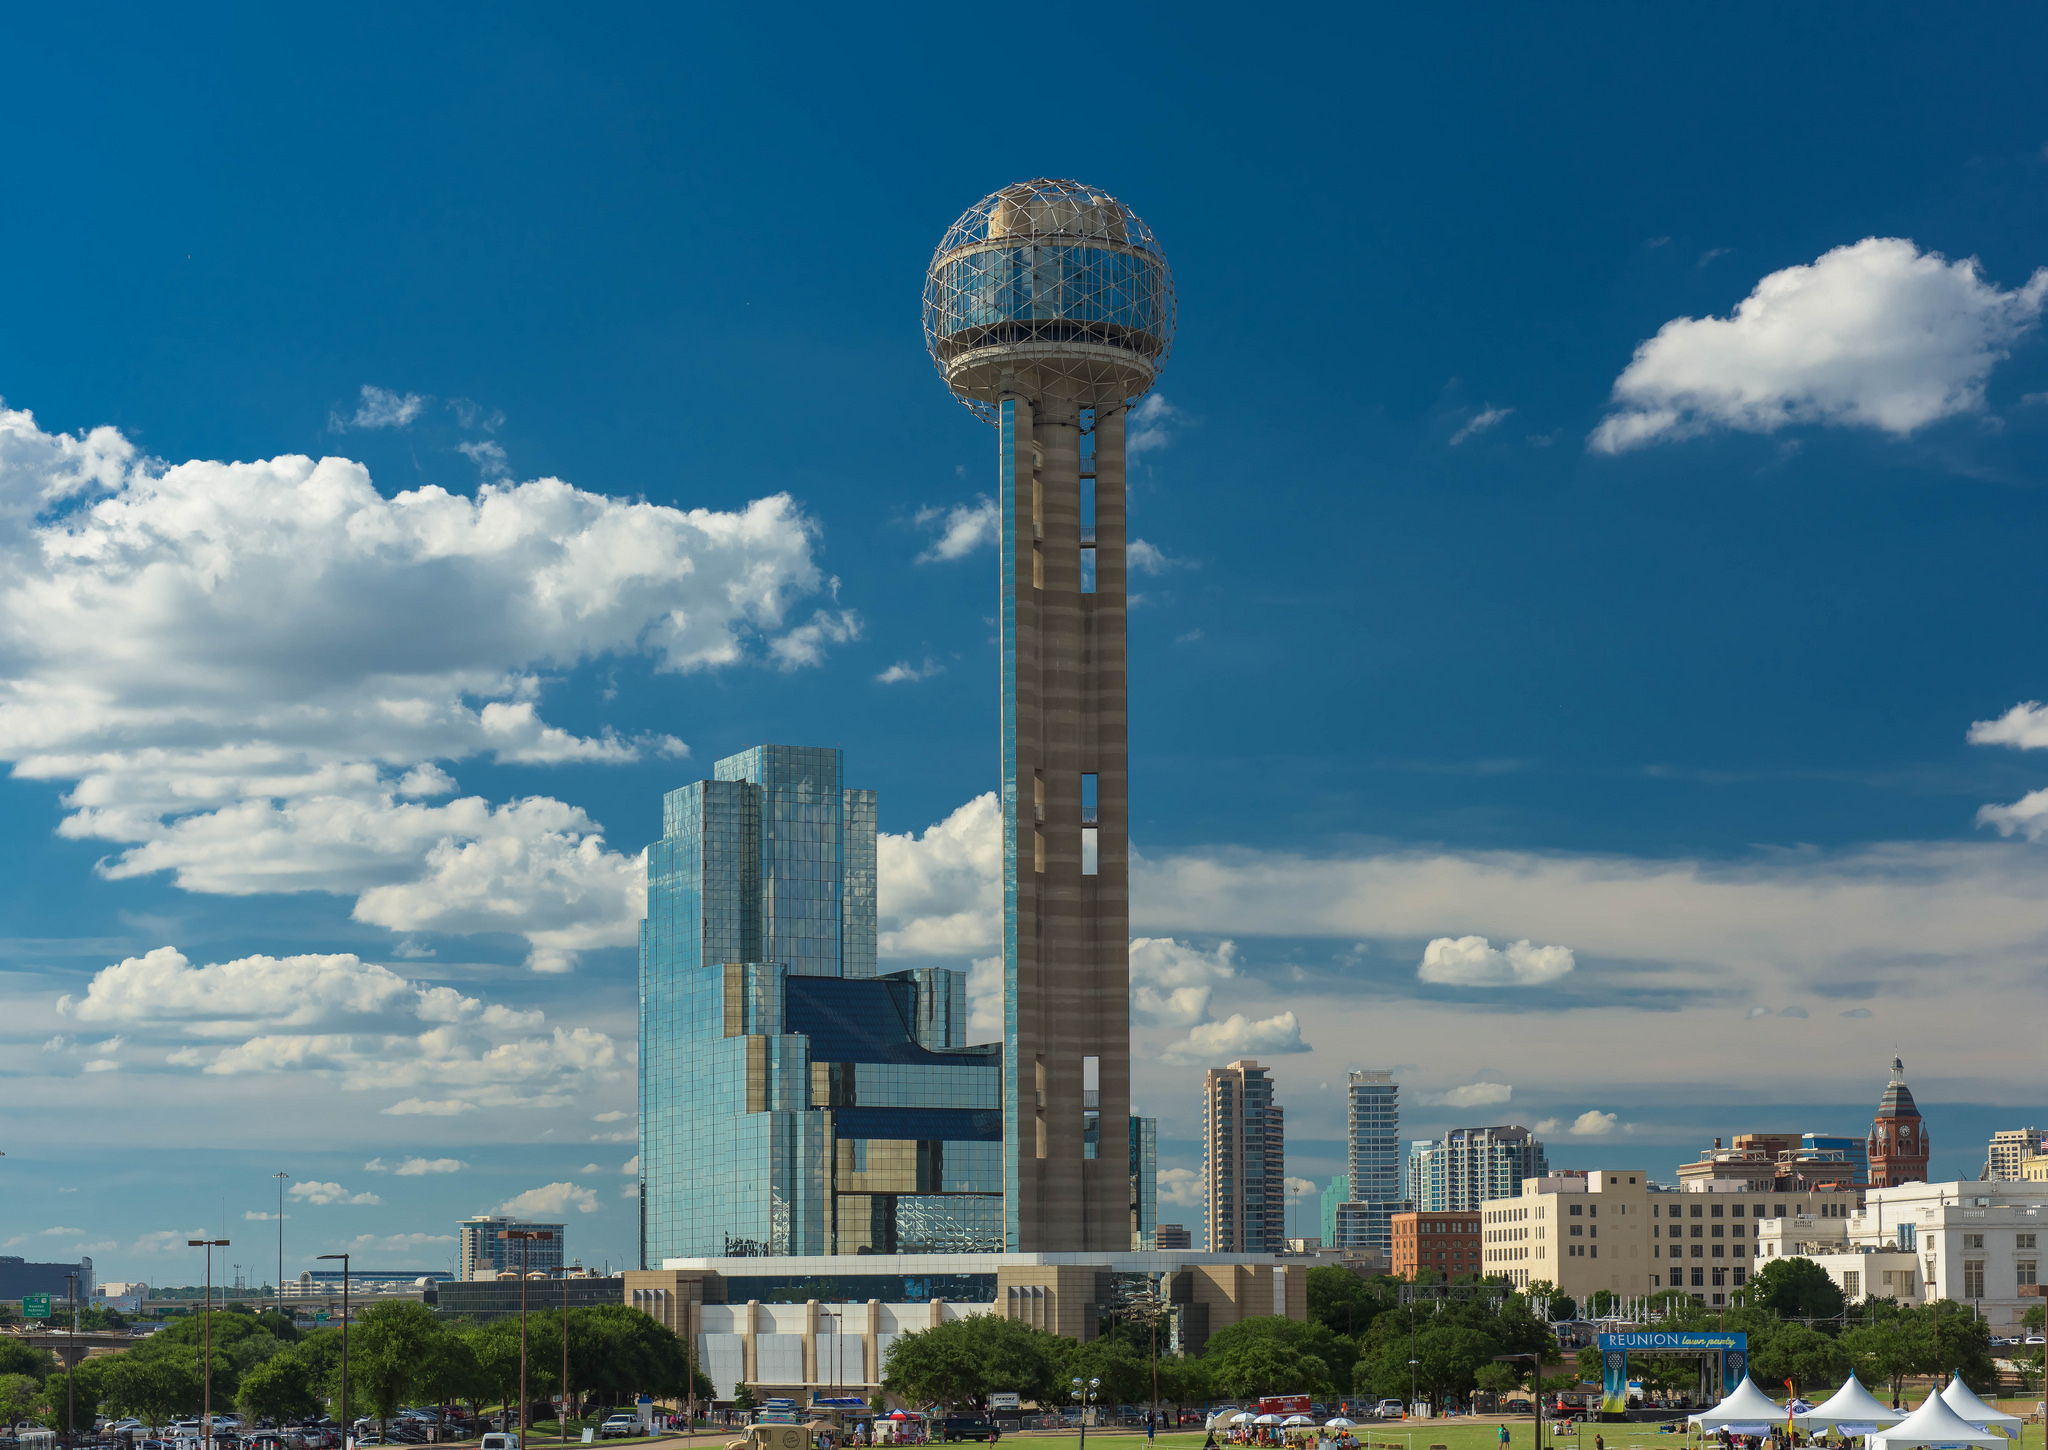 dallas-tourist-attractions-reunion-tower.jpg